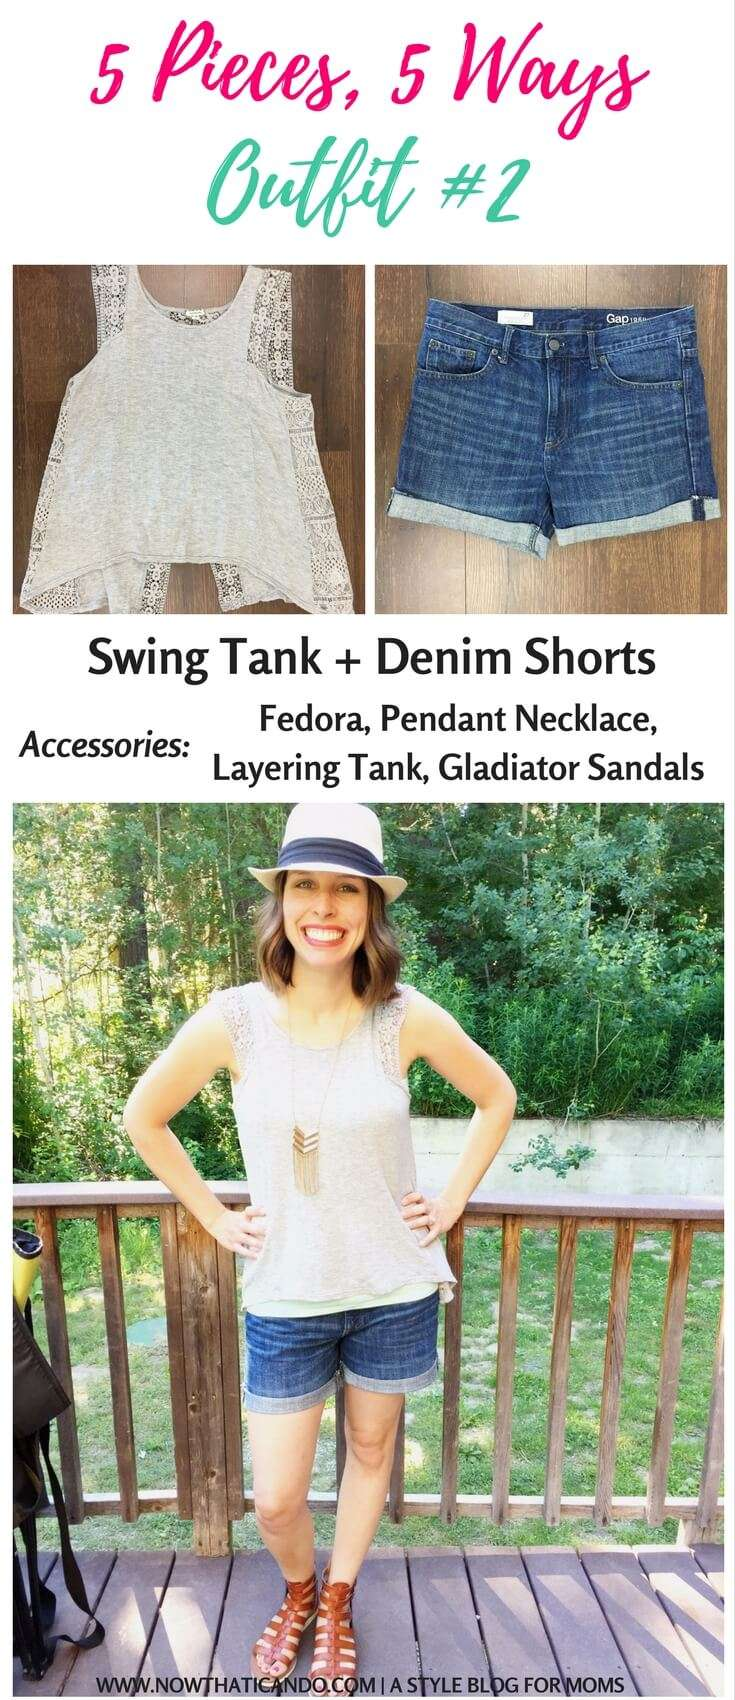 Have you ever tried a mini #capsule for a #vacation or trip? I love the idea this mama had where she used 5 clothing pieces to create 5 #outfits for her 5 day #getaway. Come see what she did and then tell me.. would you try this? #tips #fashion #mom #ideas #style #tricks #momlife #easy #clothes